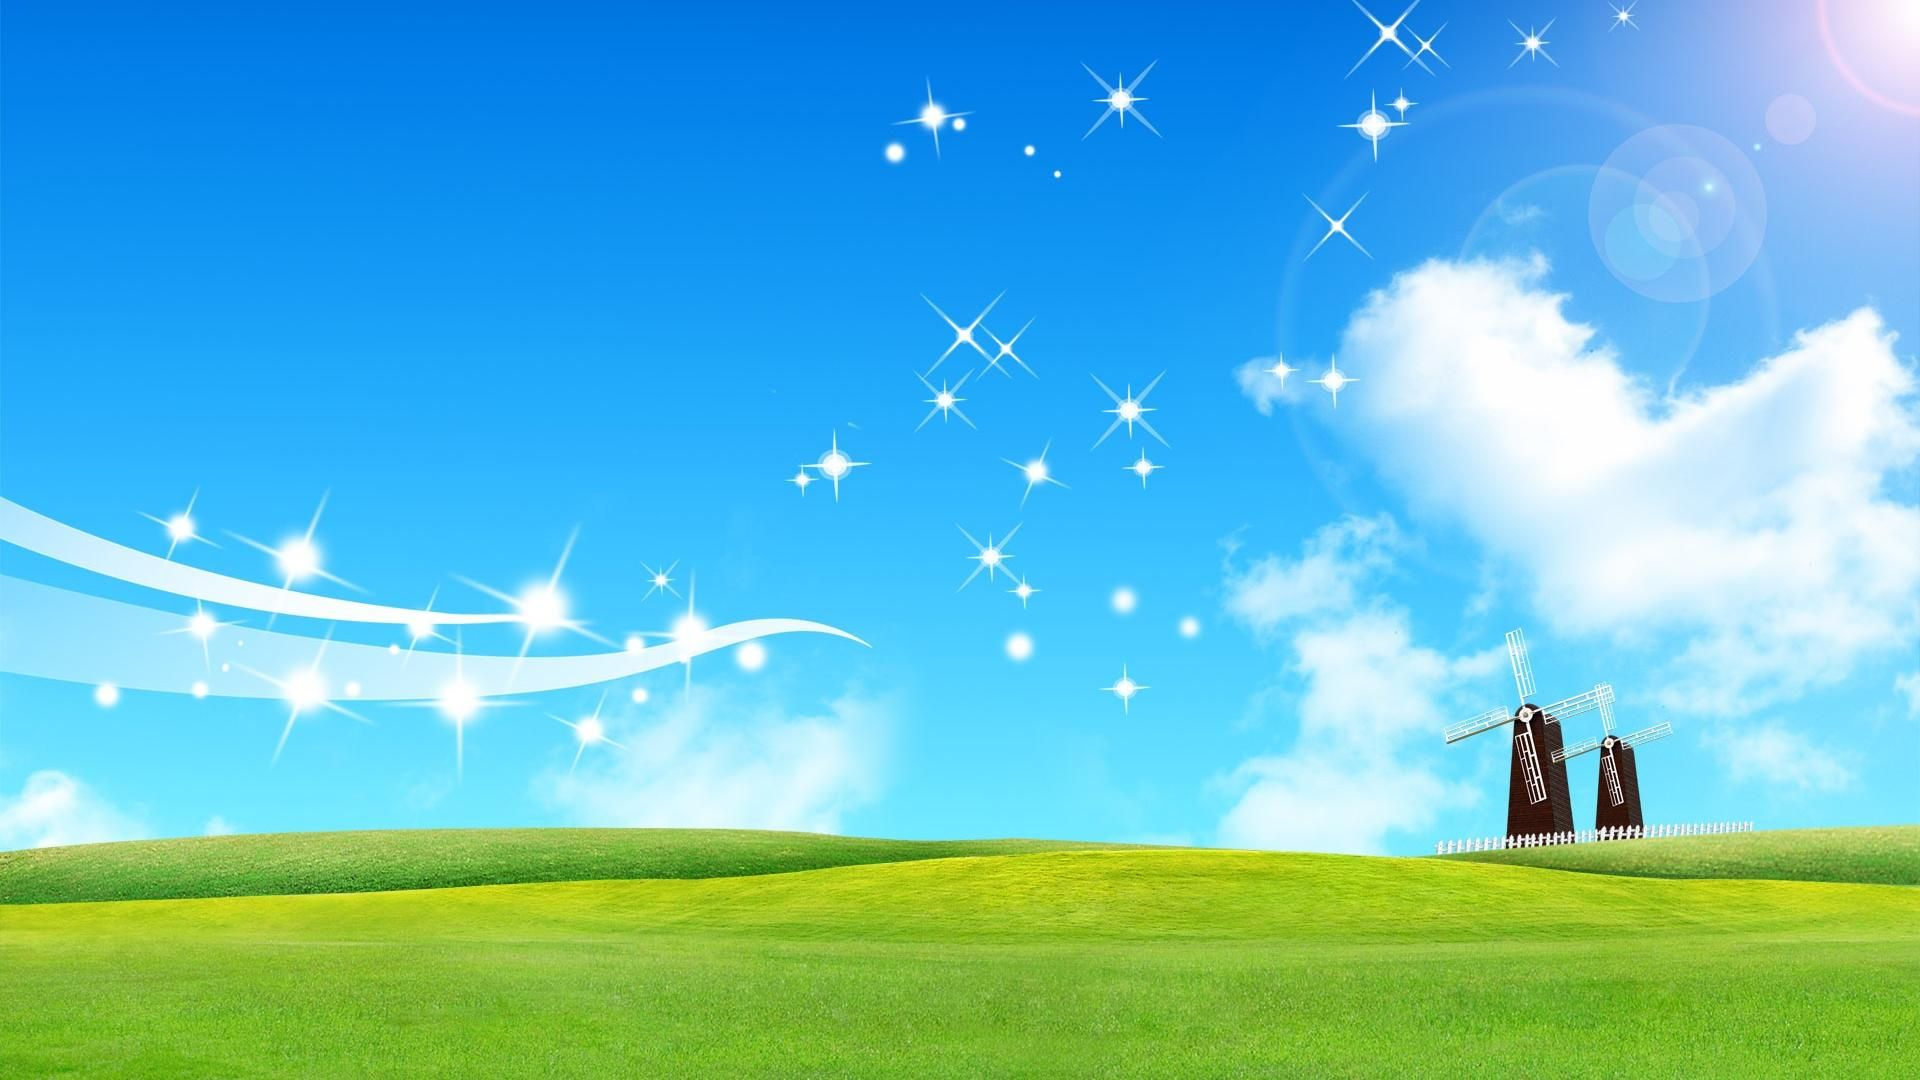 Nature background free stock photos download Free stock 1920